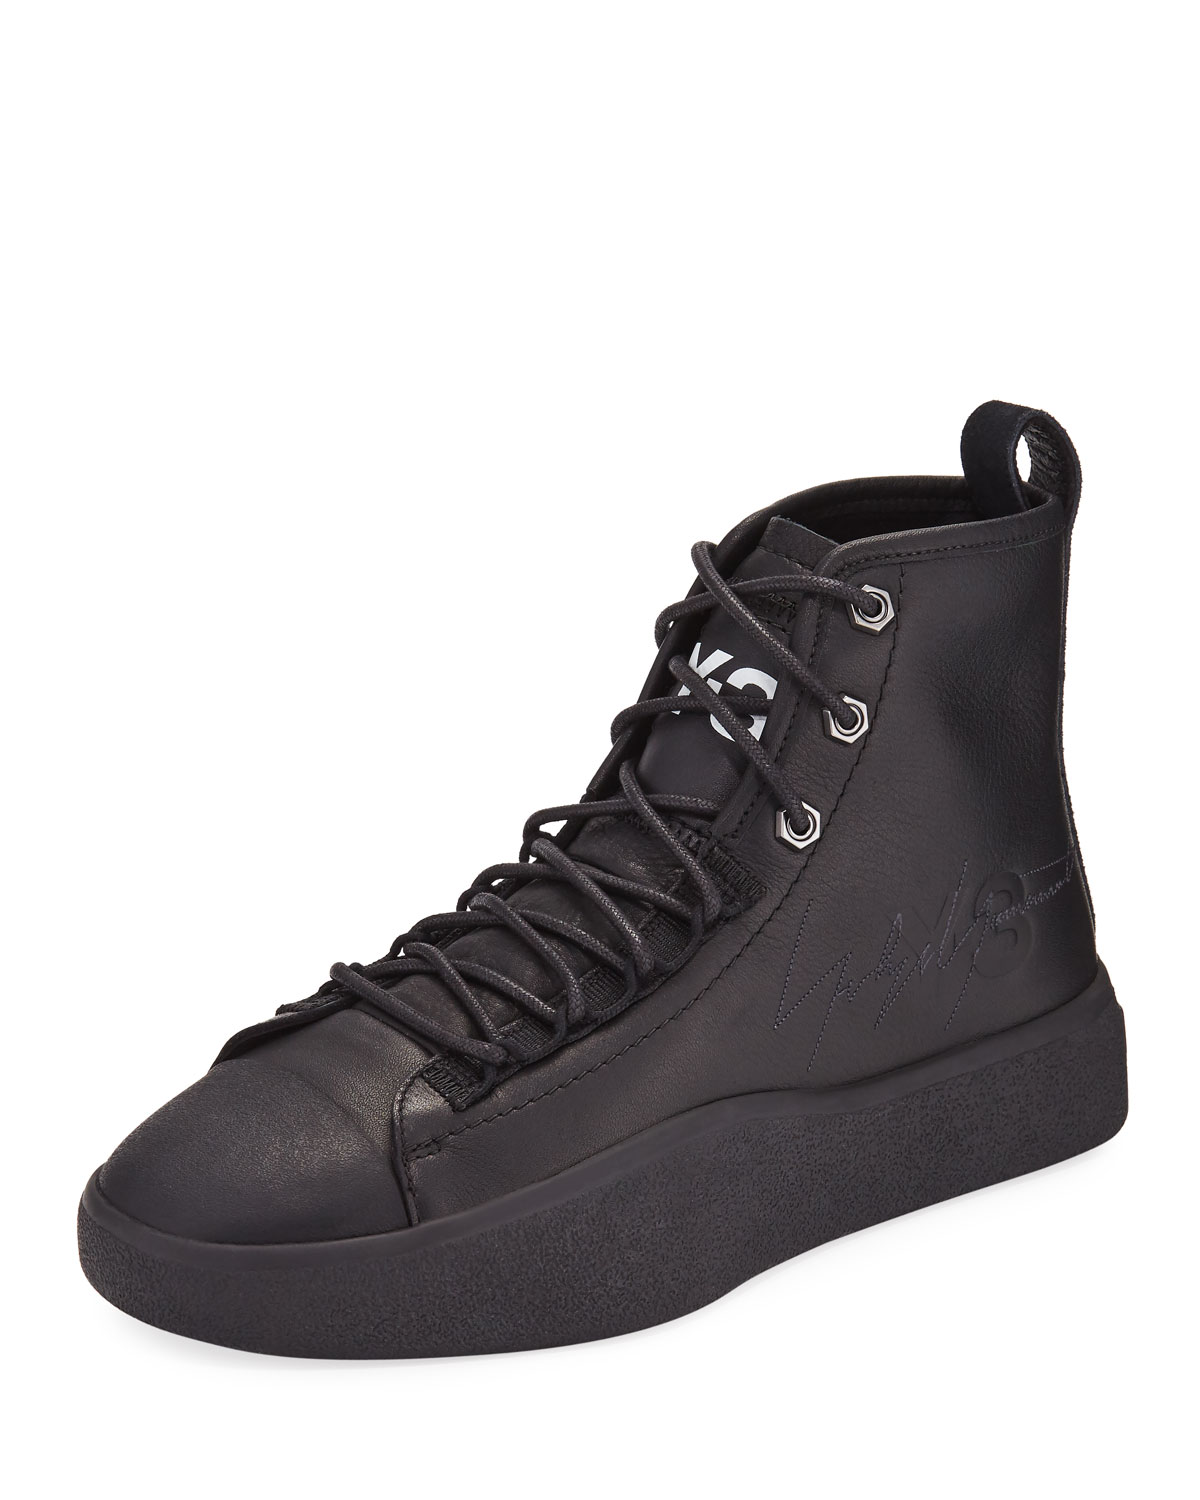 0542ea2389 Y-3 Men s Bashyo Leather High-Top Sneakers